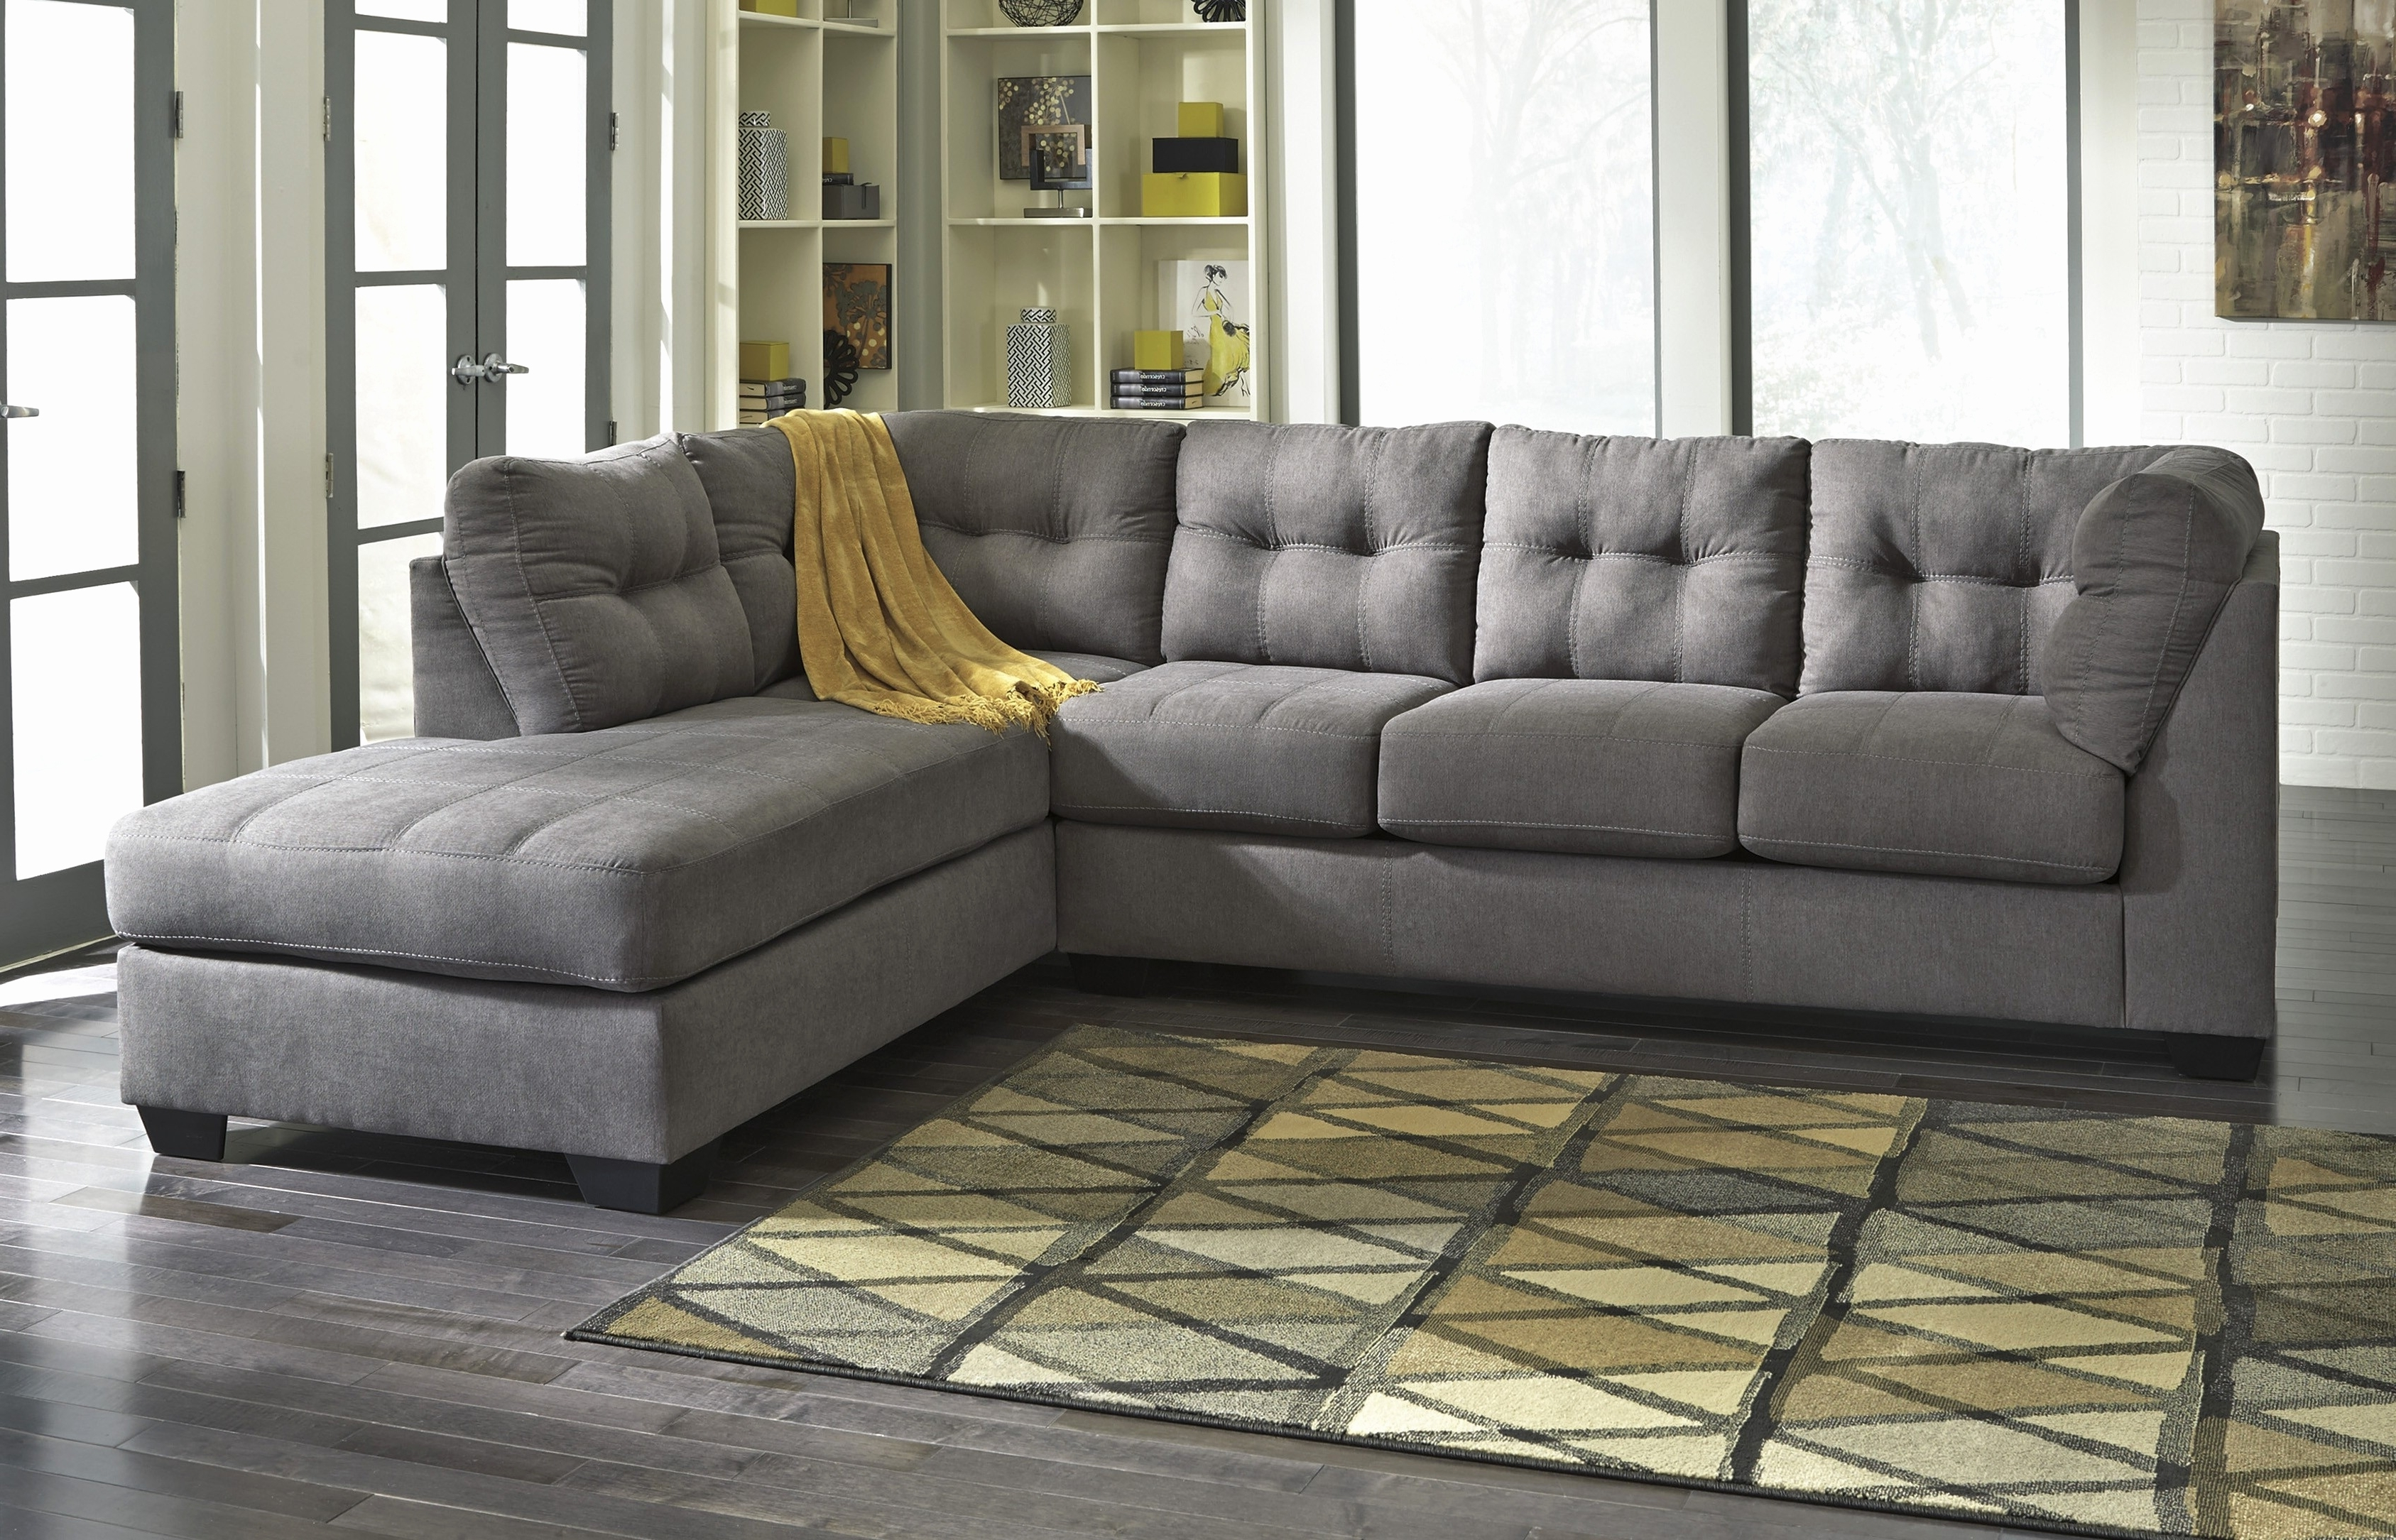 Unique Sectional Sleeper Sofa Ashley 2018 – Couches And Sofas Ideas Within Popular Sectional Sofas At Ashley (Gallery 9 of 20)